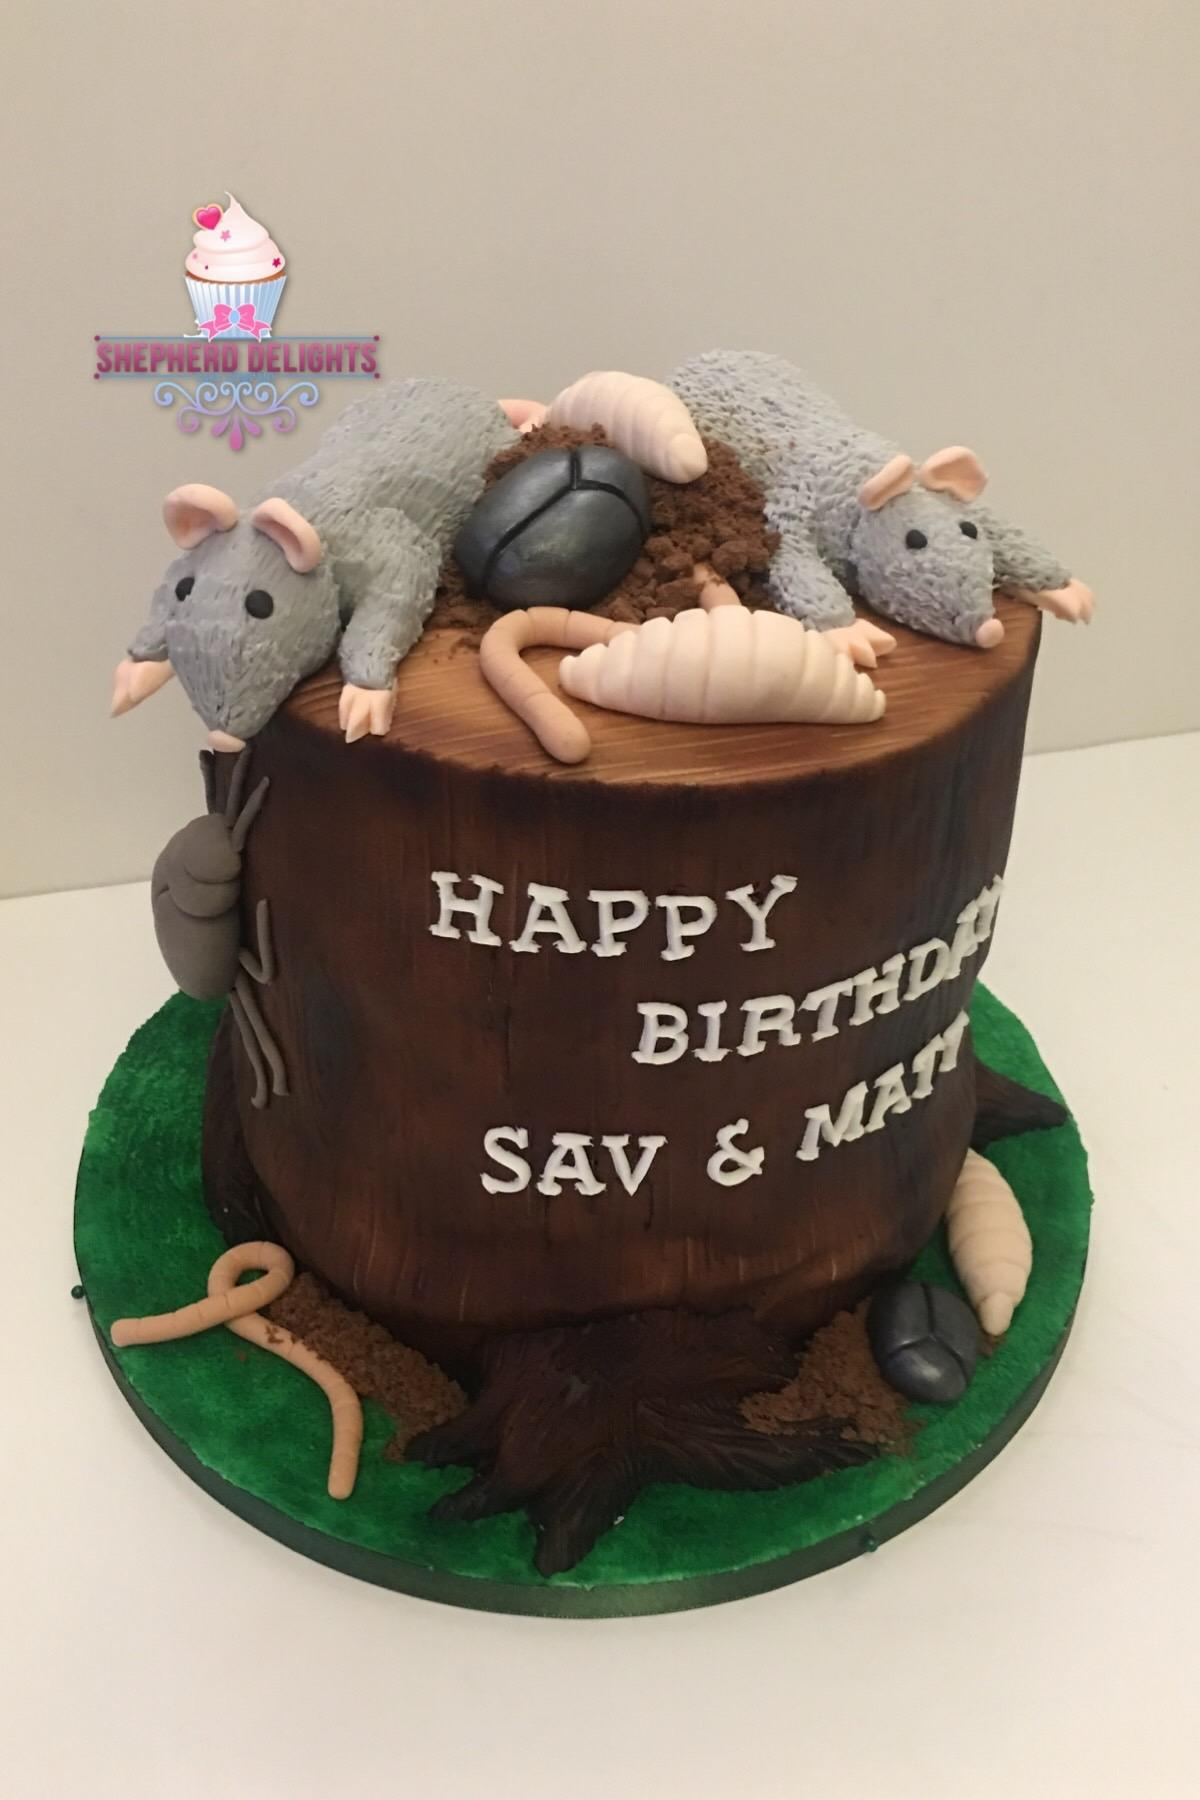 Surprising Tree Stump Bug Novelty Cakes Novelty Birthday Wedding Cakes Funny Birthday Cards Online Alyptdamsfinfo